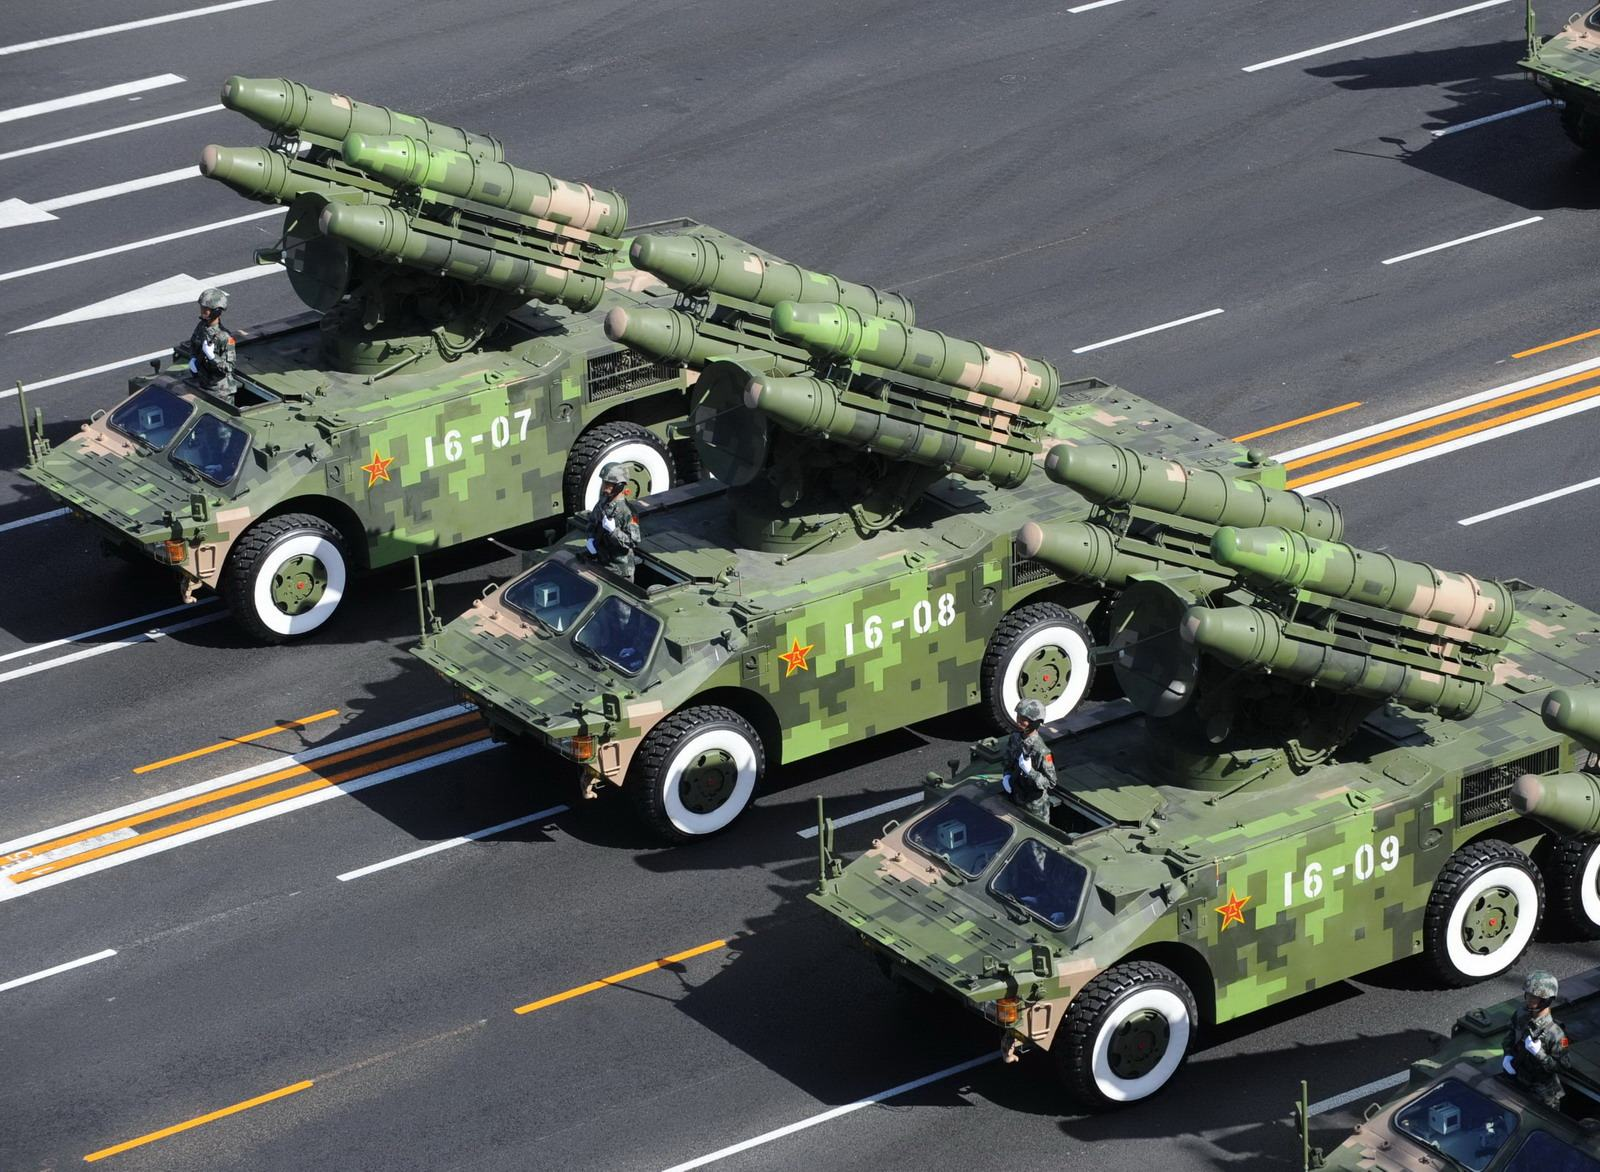 hongqi 7 fm 90 surface to air missile system chinese. Black Bedroom Furniture Sets. Home Design Ideas